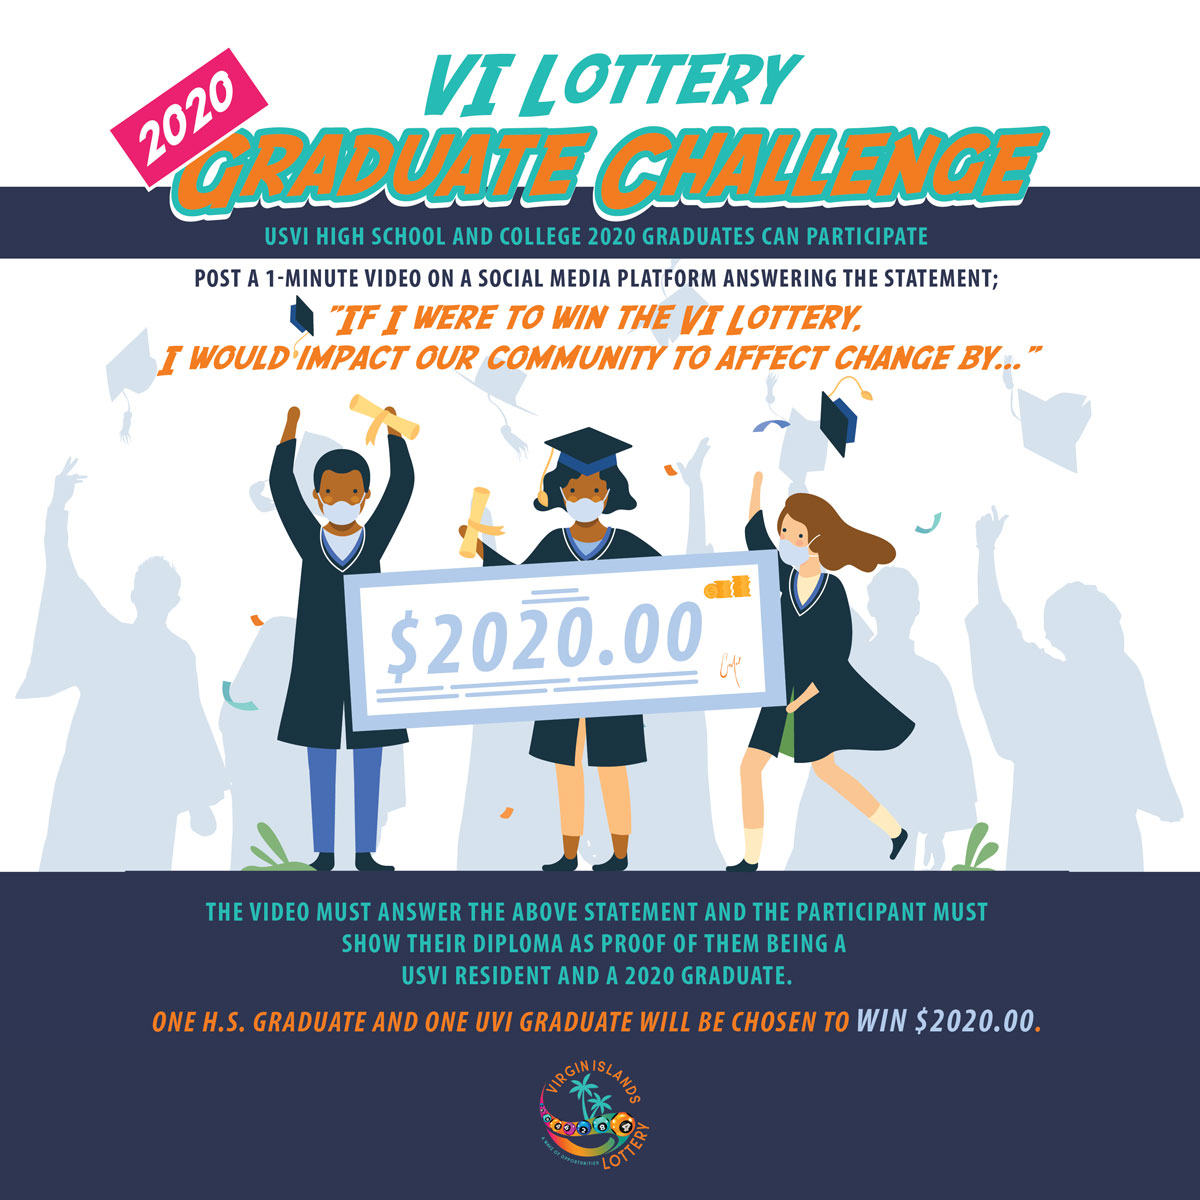 VI Lottery 2020 Graduate Challenge - Click to Submit Your Entry!